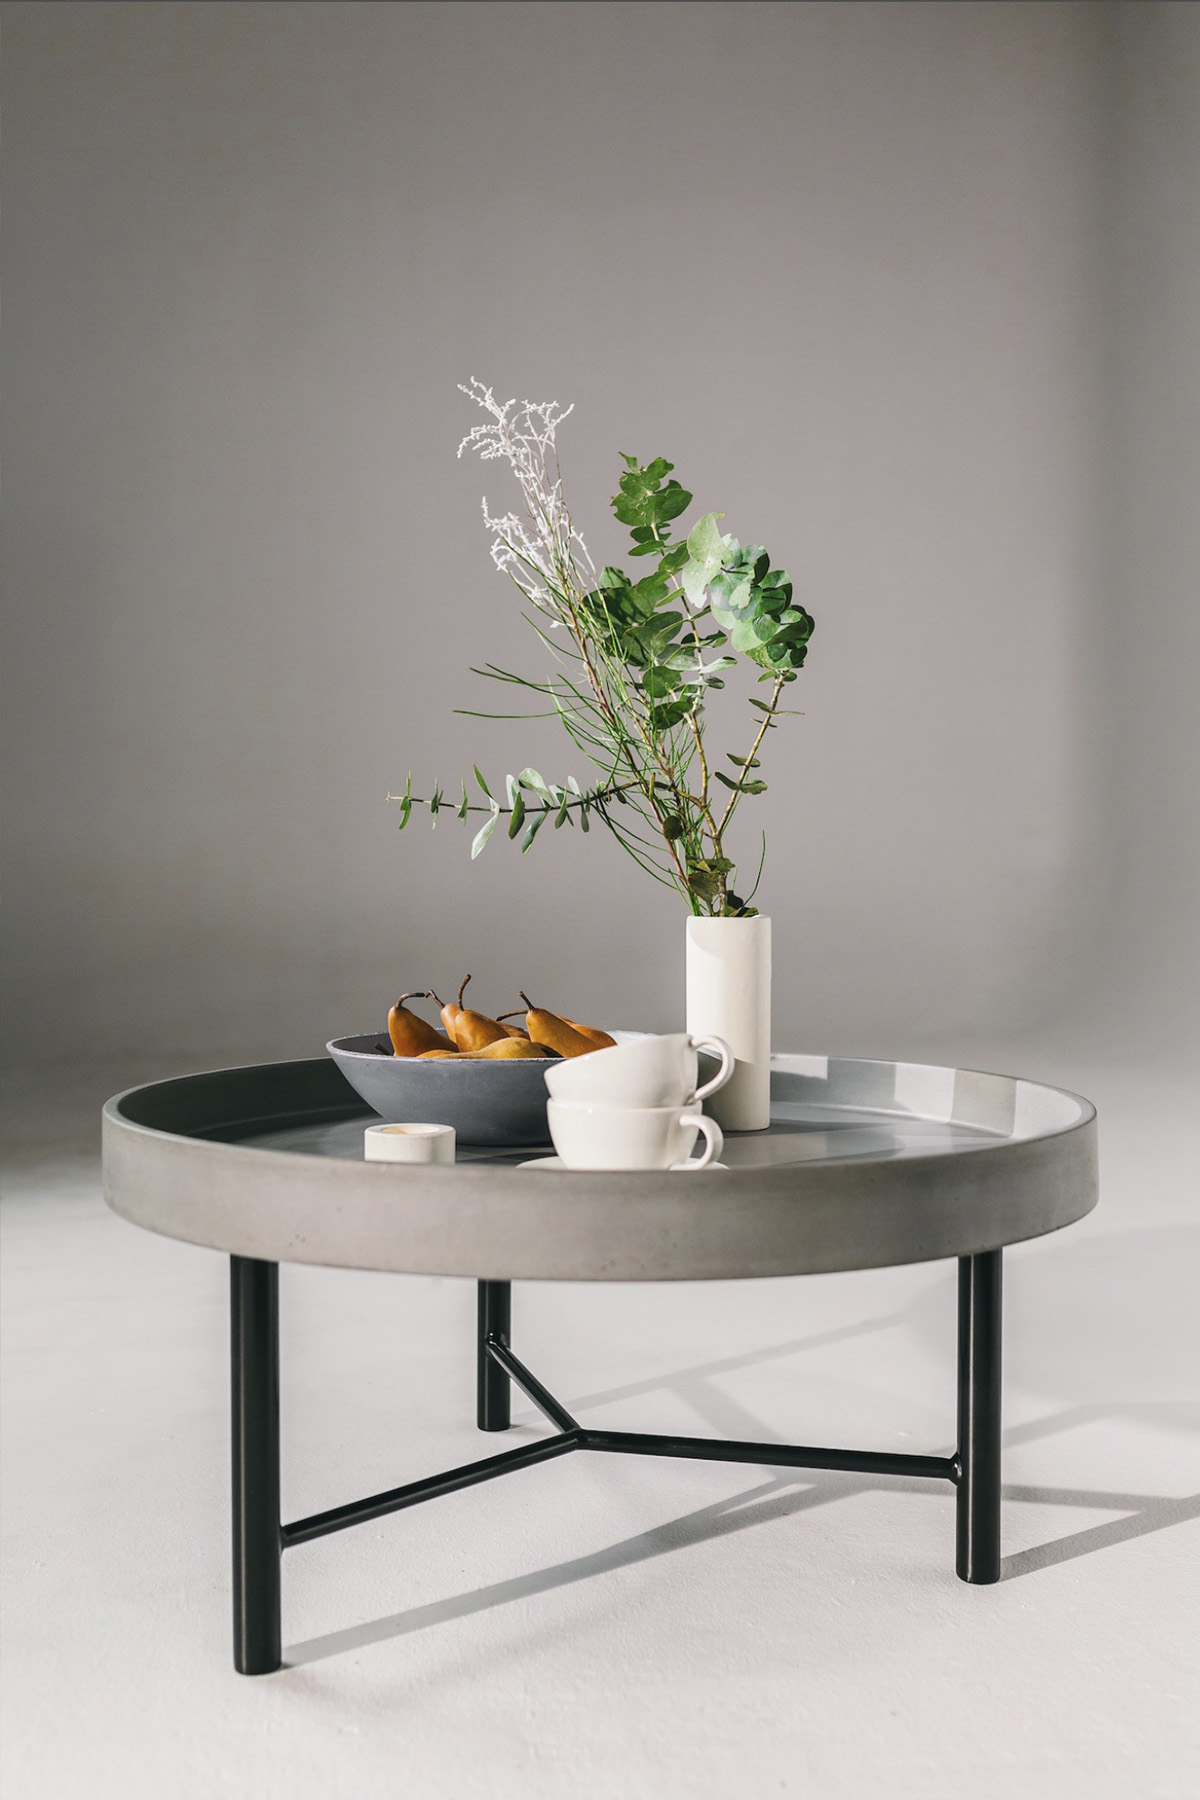 Andy Coffee Table,  Price $980   https://noodco.com.au/product/andy-coffee-table/